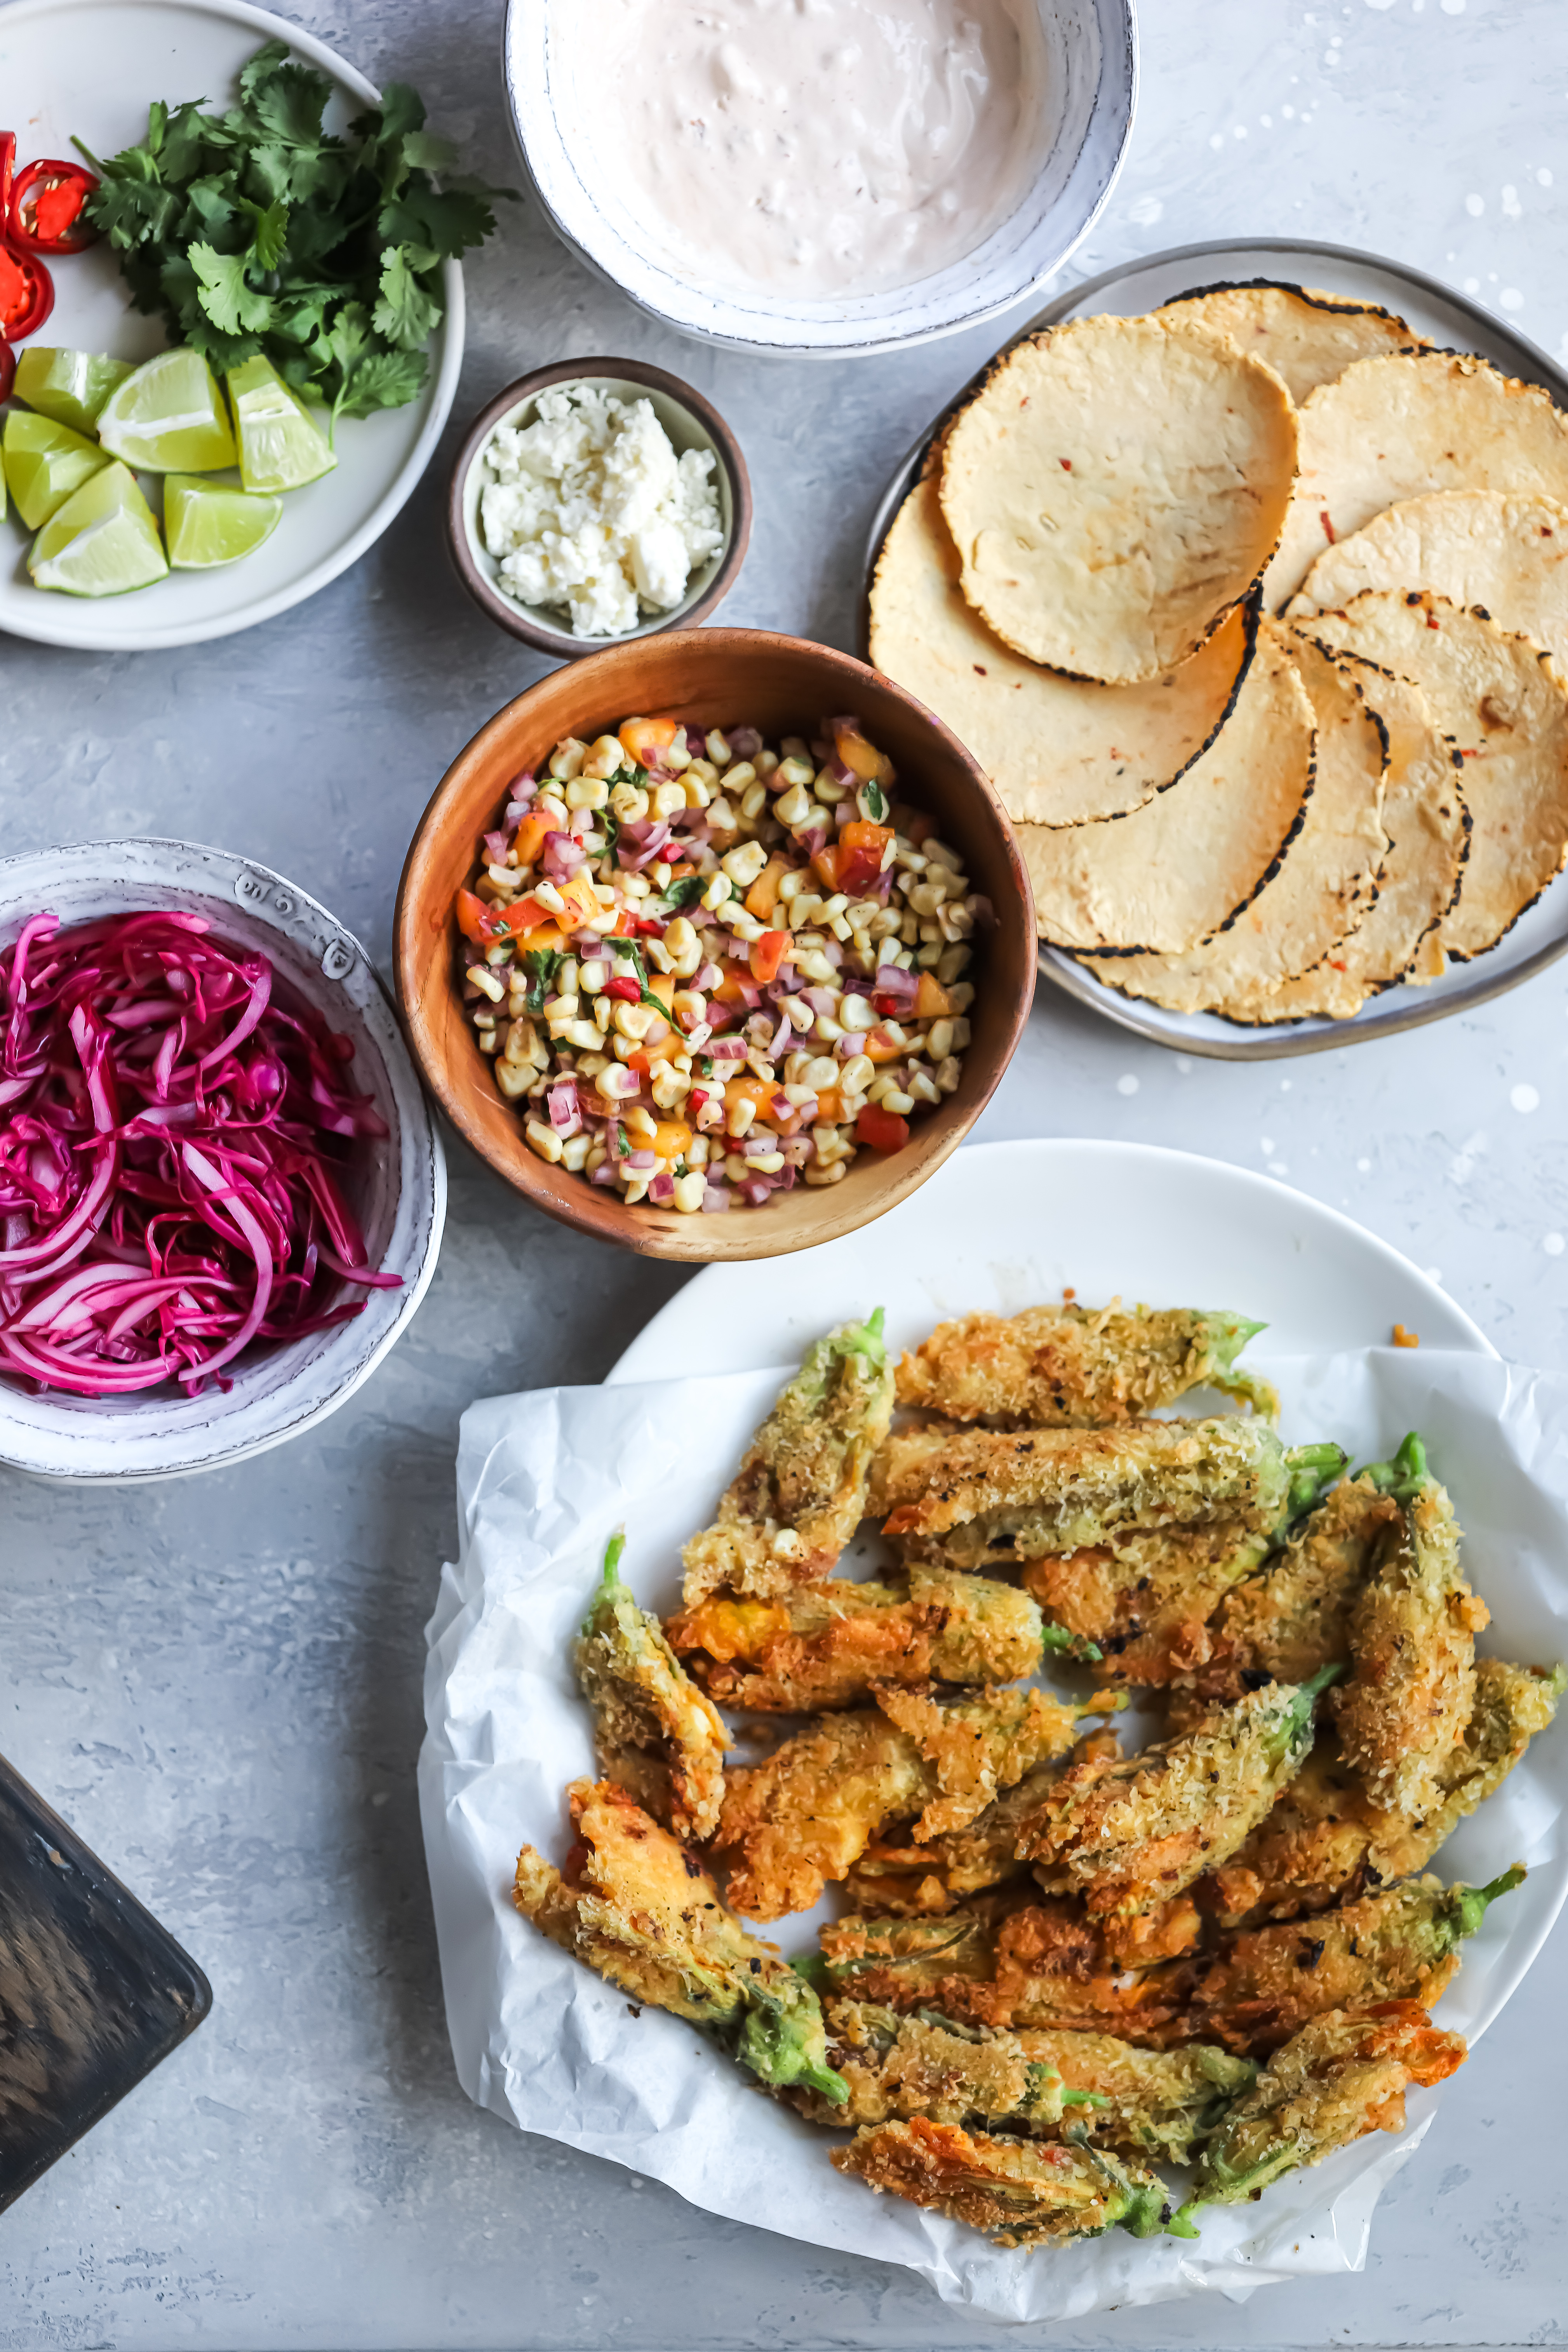 SUMMER STUFFED AND FRIED SQUASH BLOSSOM TACOS